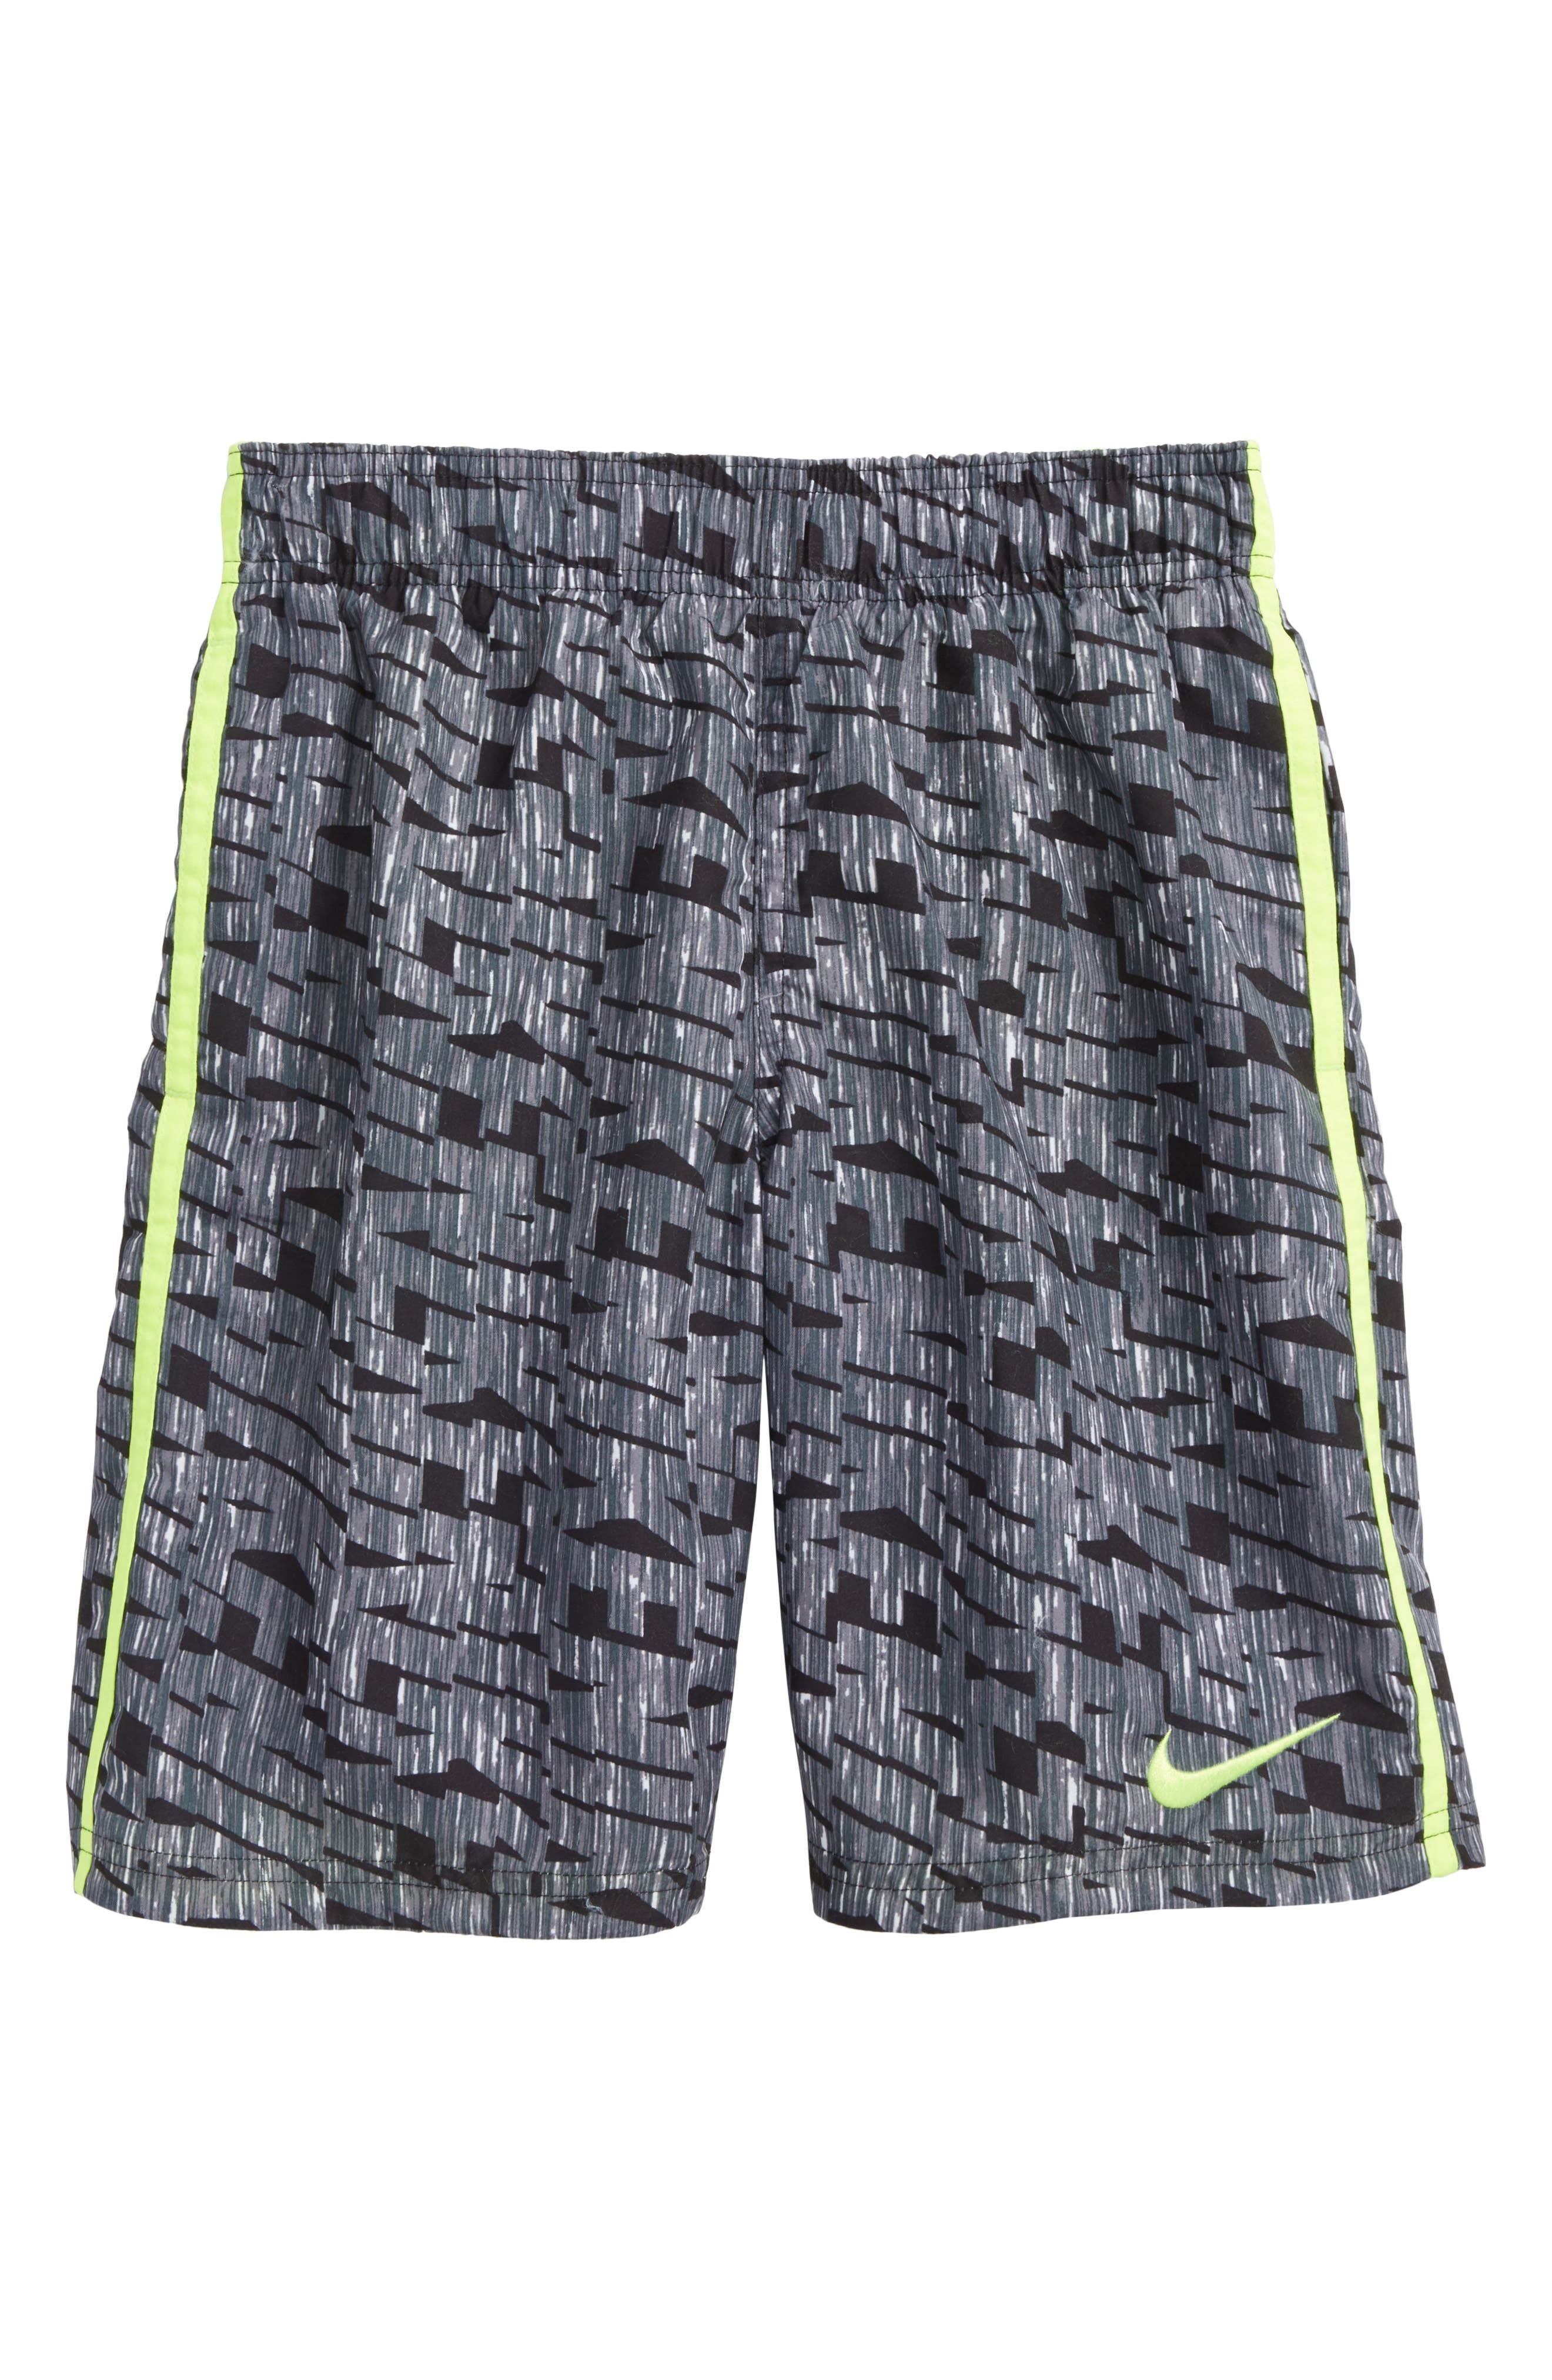 Diverge Volley Shorts,                         Main,                         color, 001